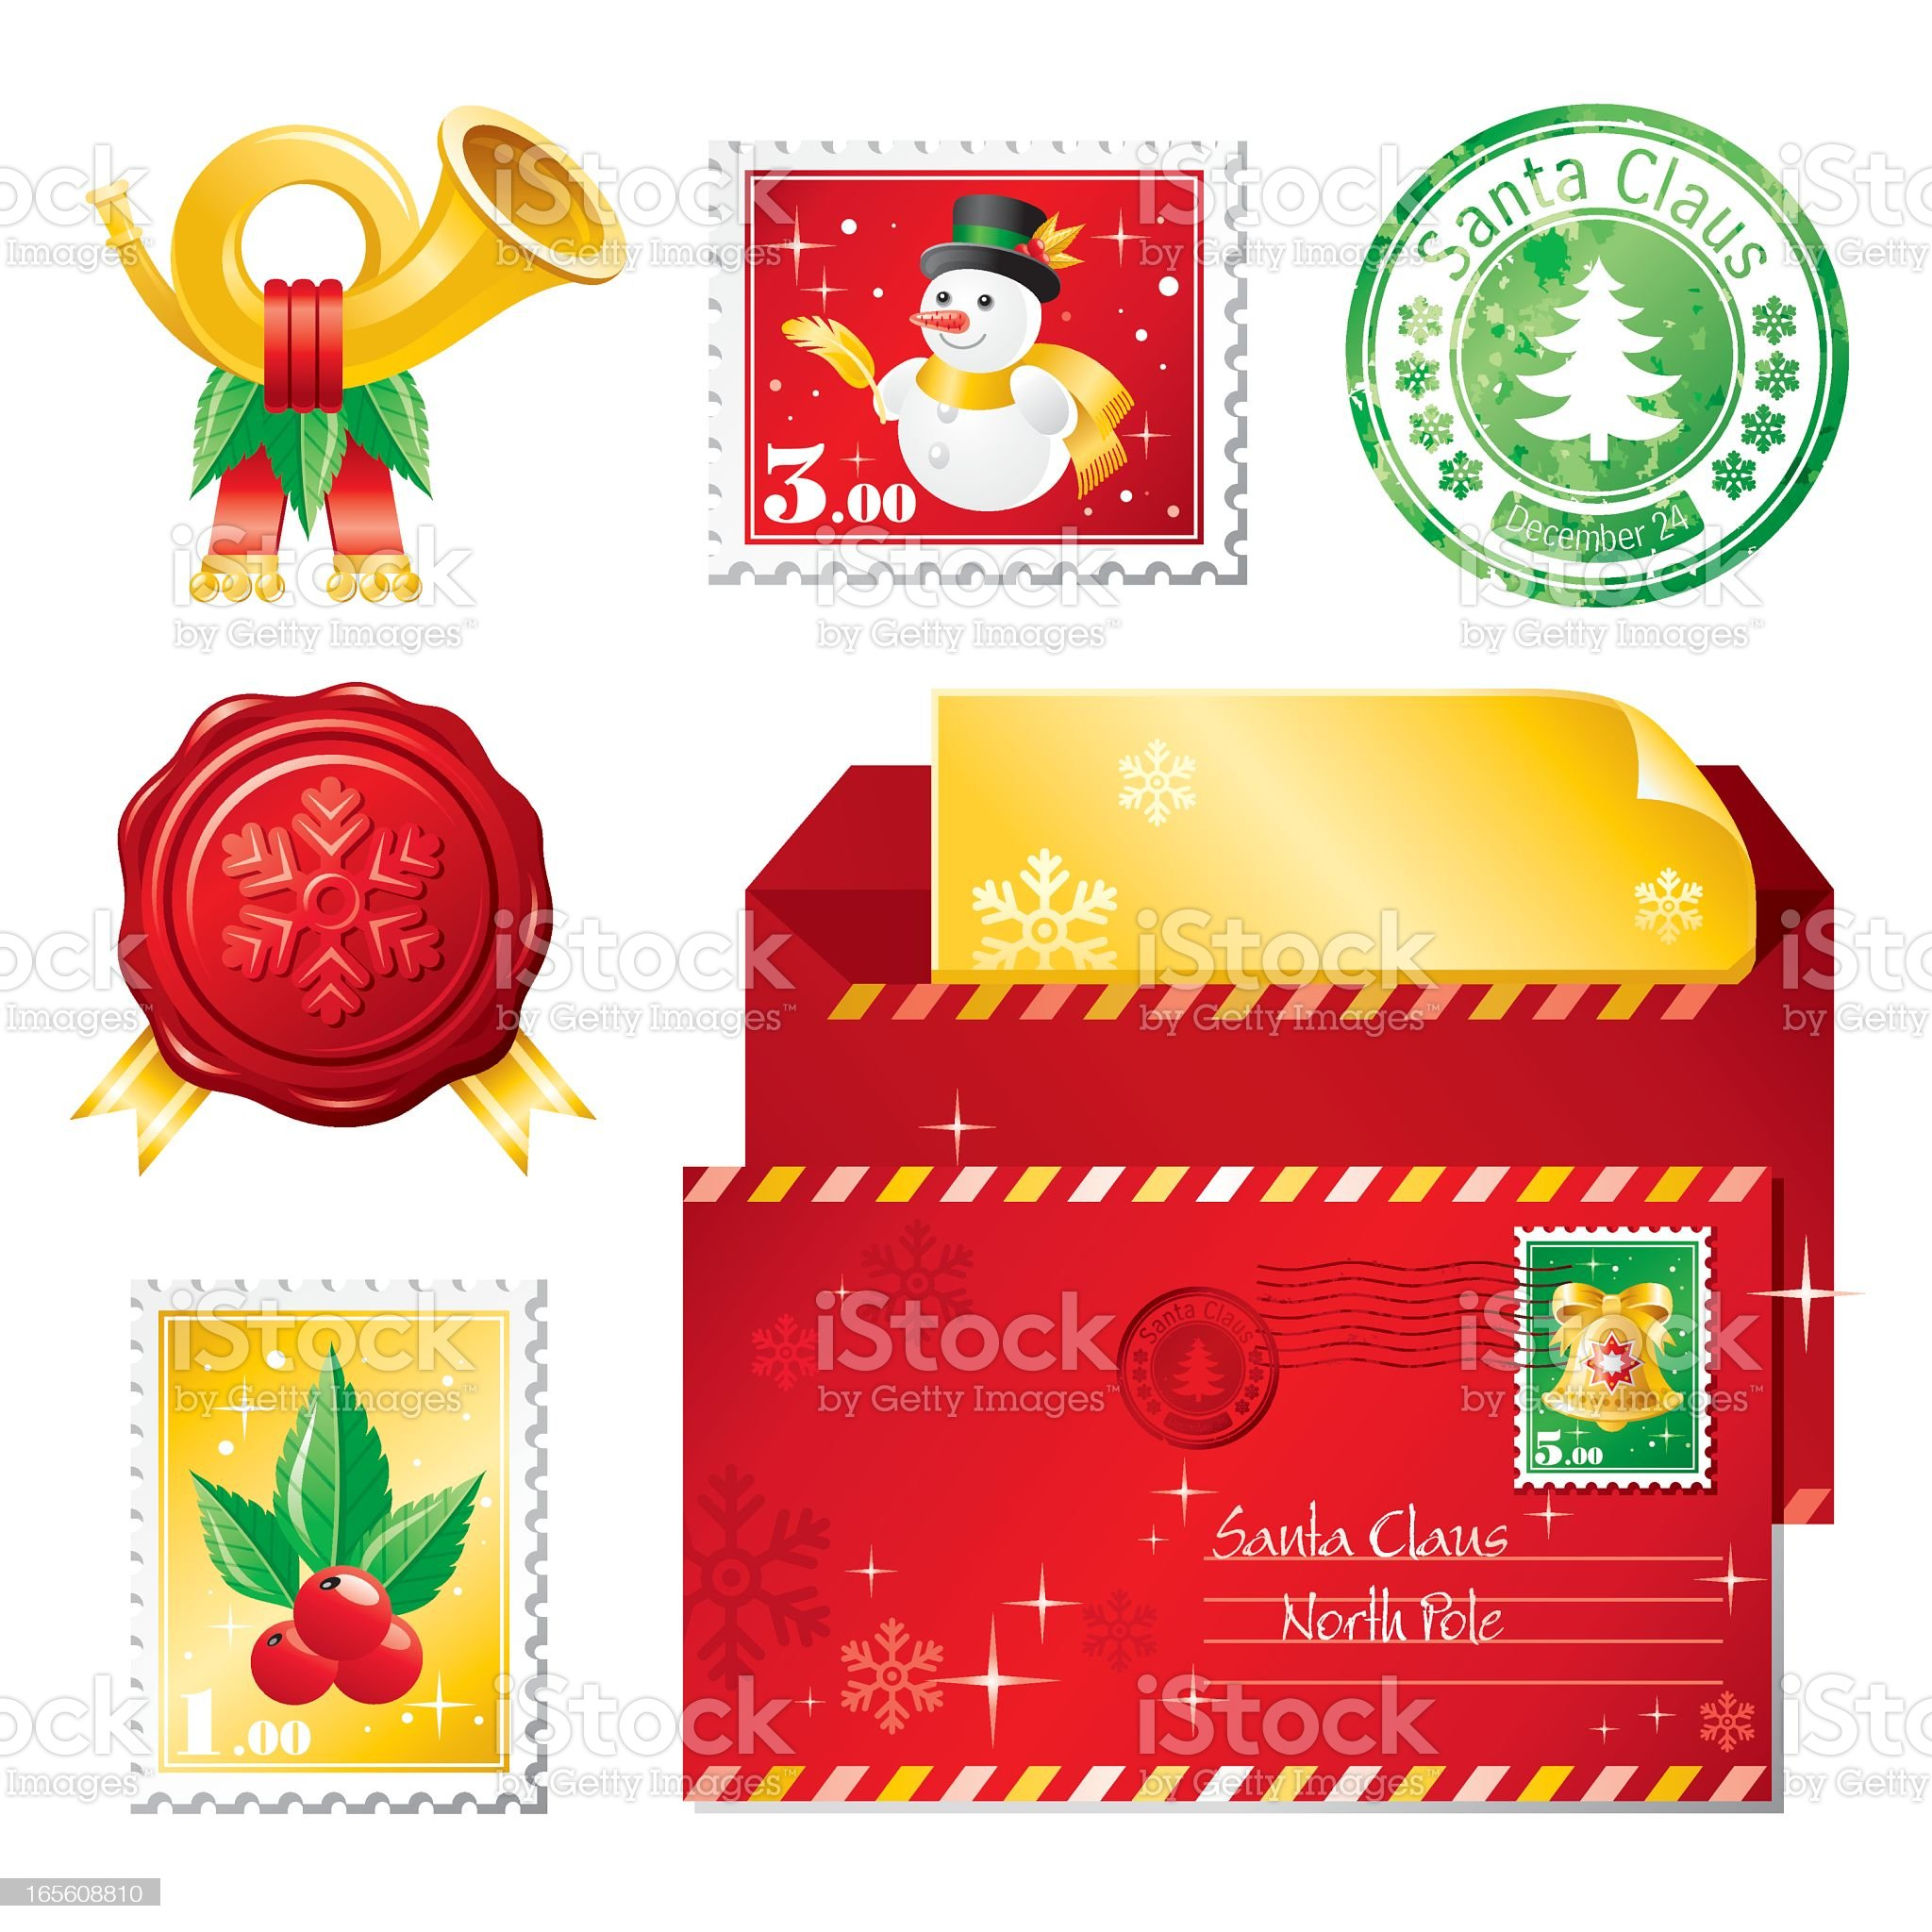 Christmas mail icon set royalty-free stock vector art